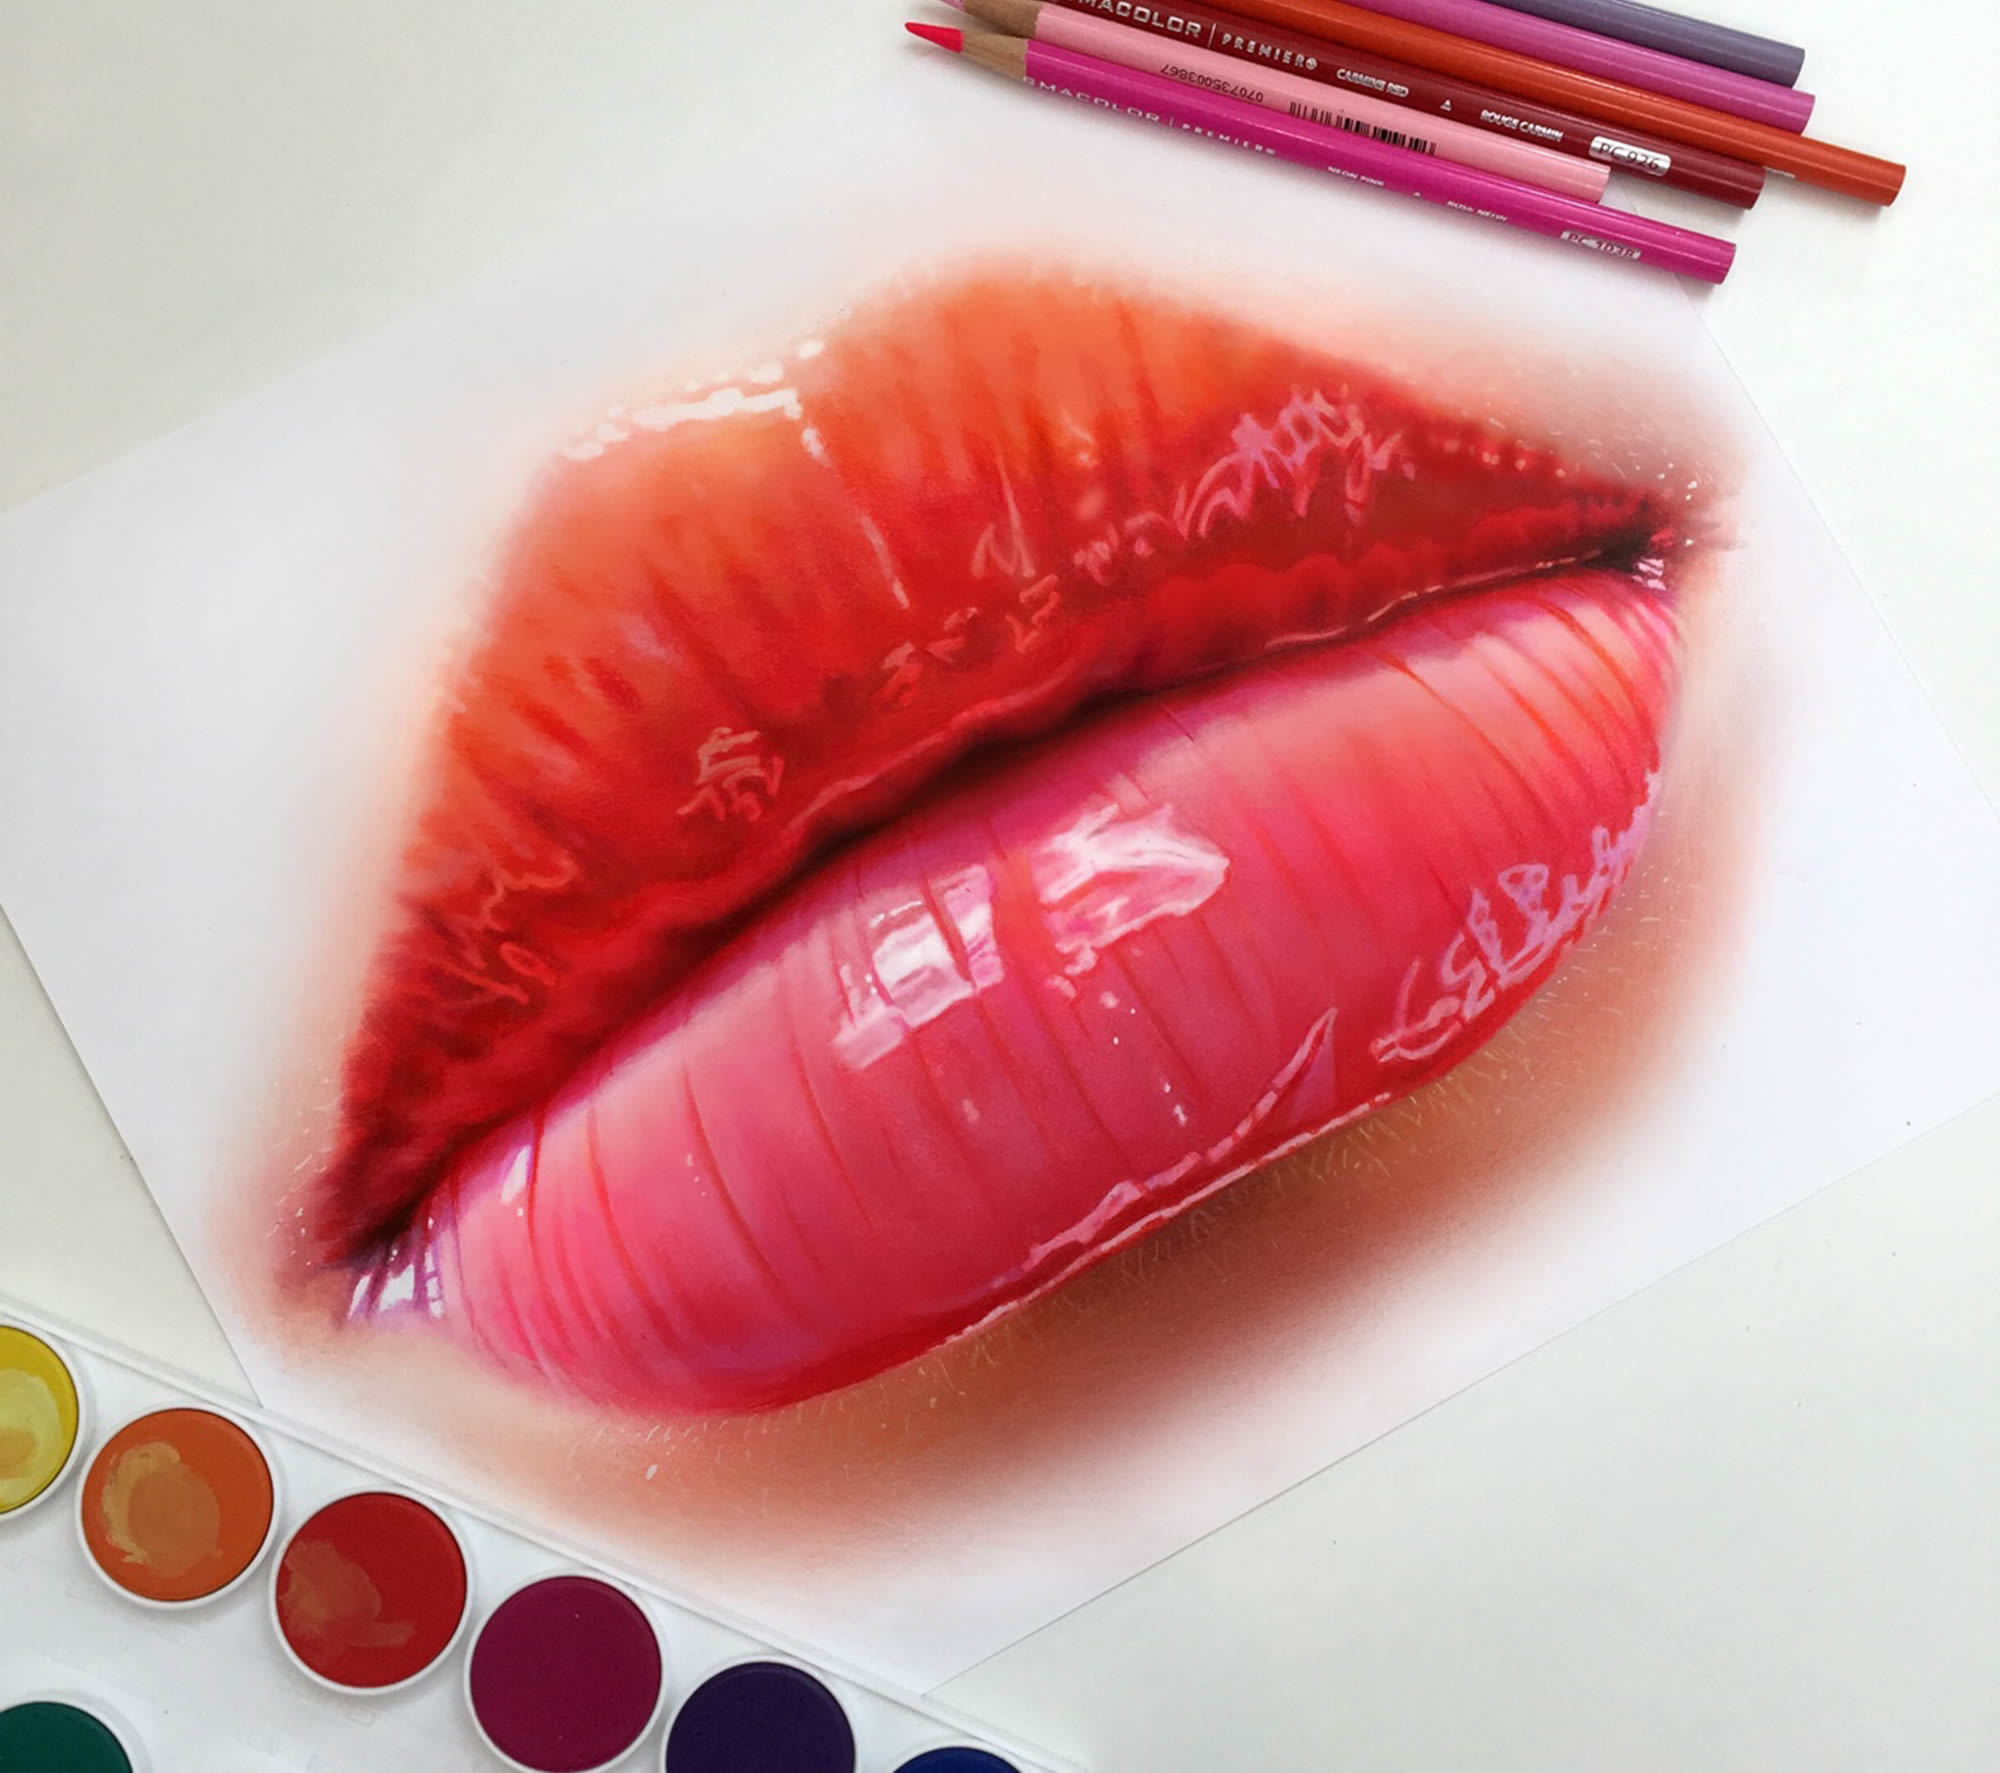 pink lips, 3d drawing on paper